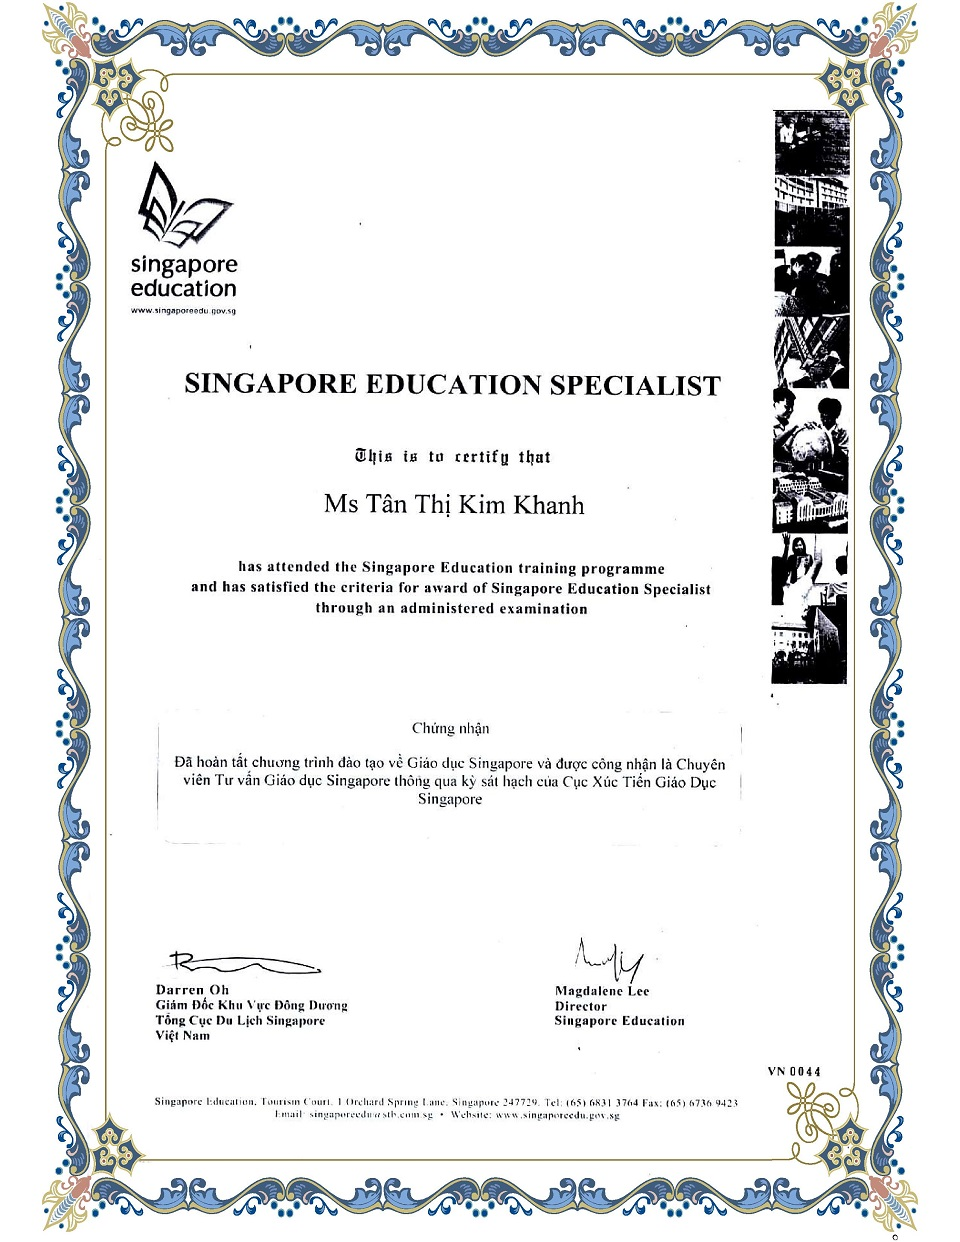 1cSingapore_Education_Specialist_-_Tan_Thi_Kim_Khanh